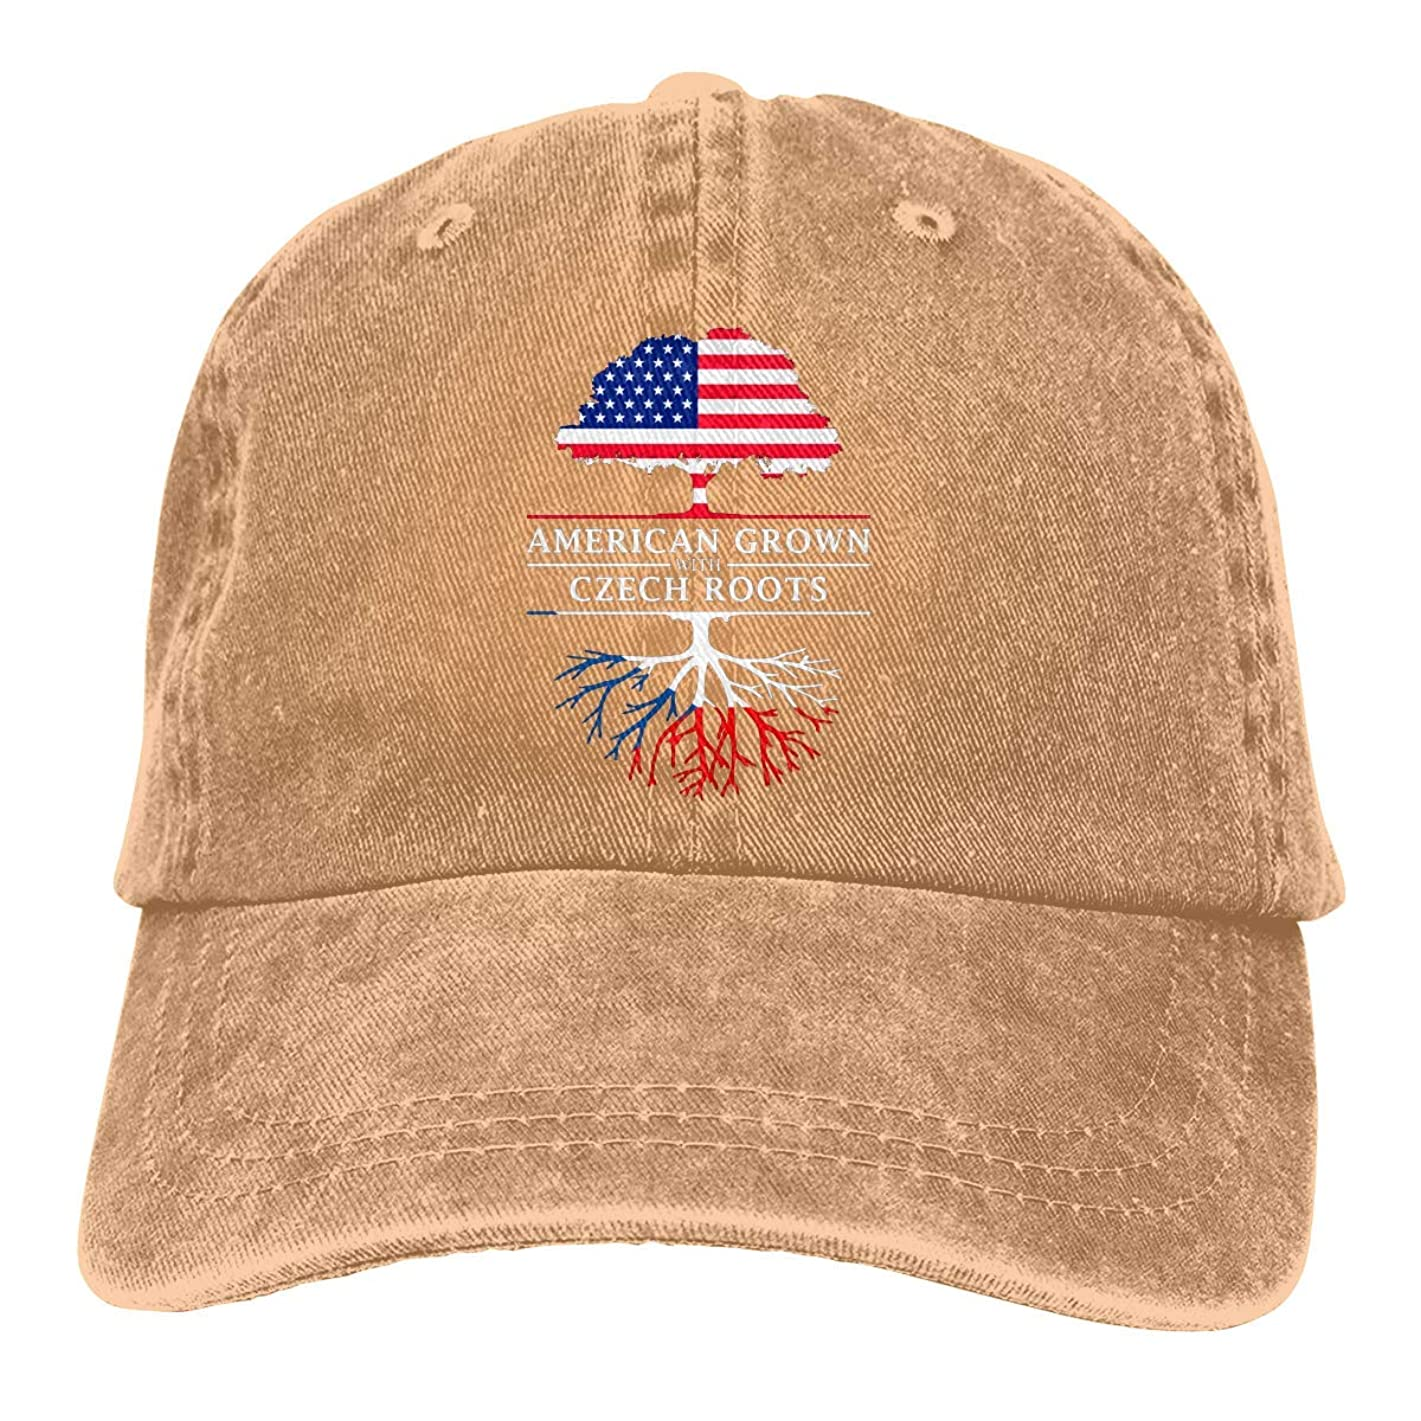 American Grown with Czech Roots Vintage Baseball Cap Trucker Hat for Men and Women